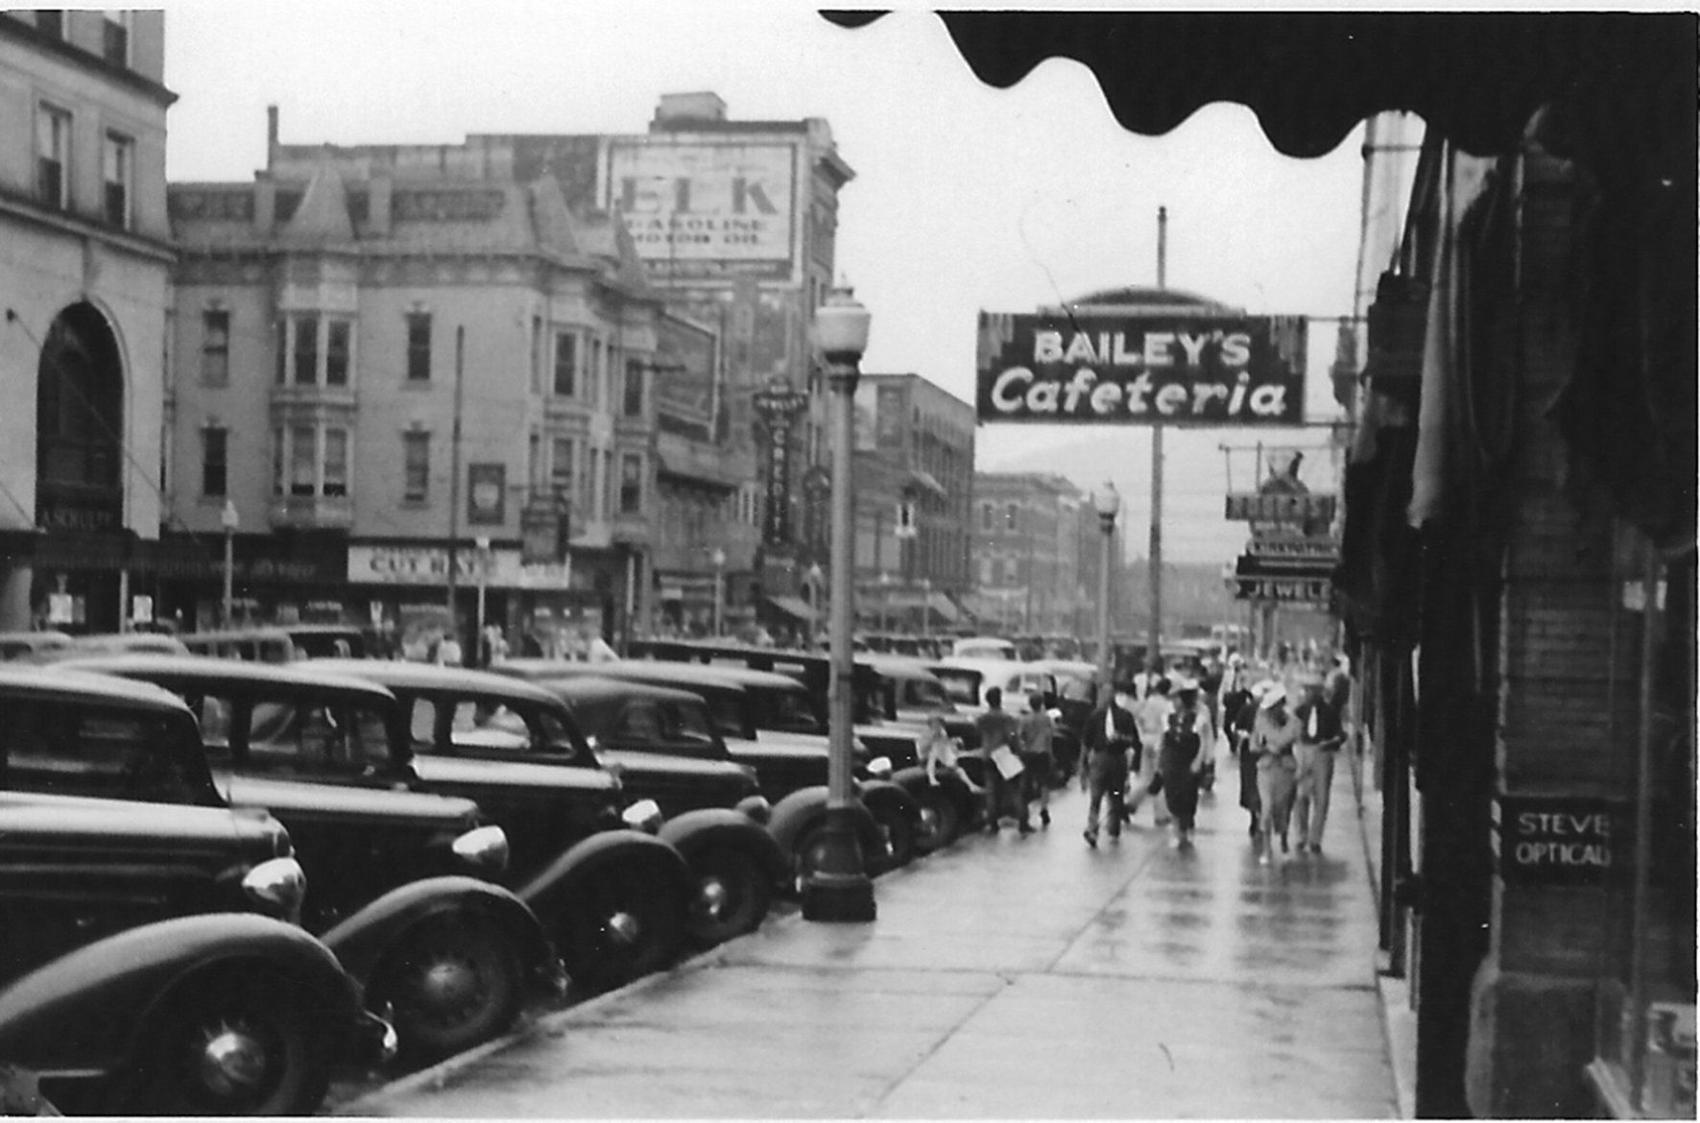 Bailey's Cafeteria, located on the east side 400 Block of 9th Street.